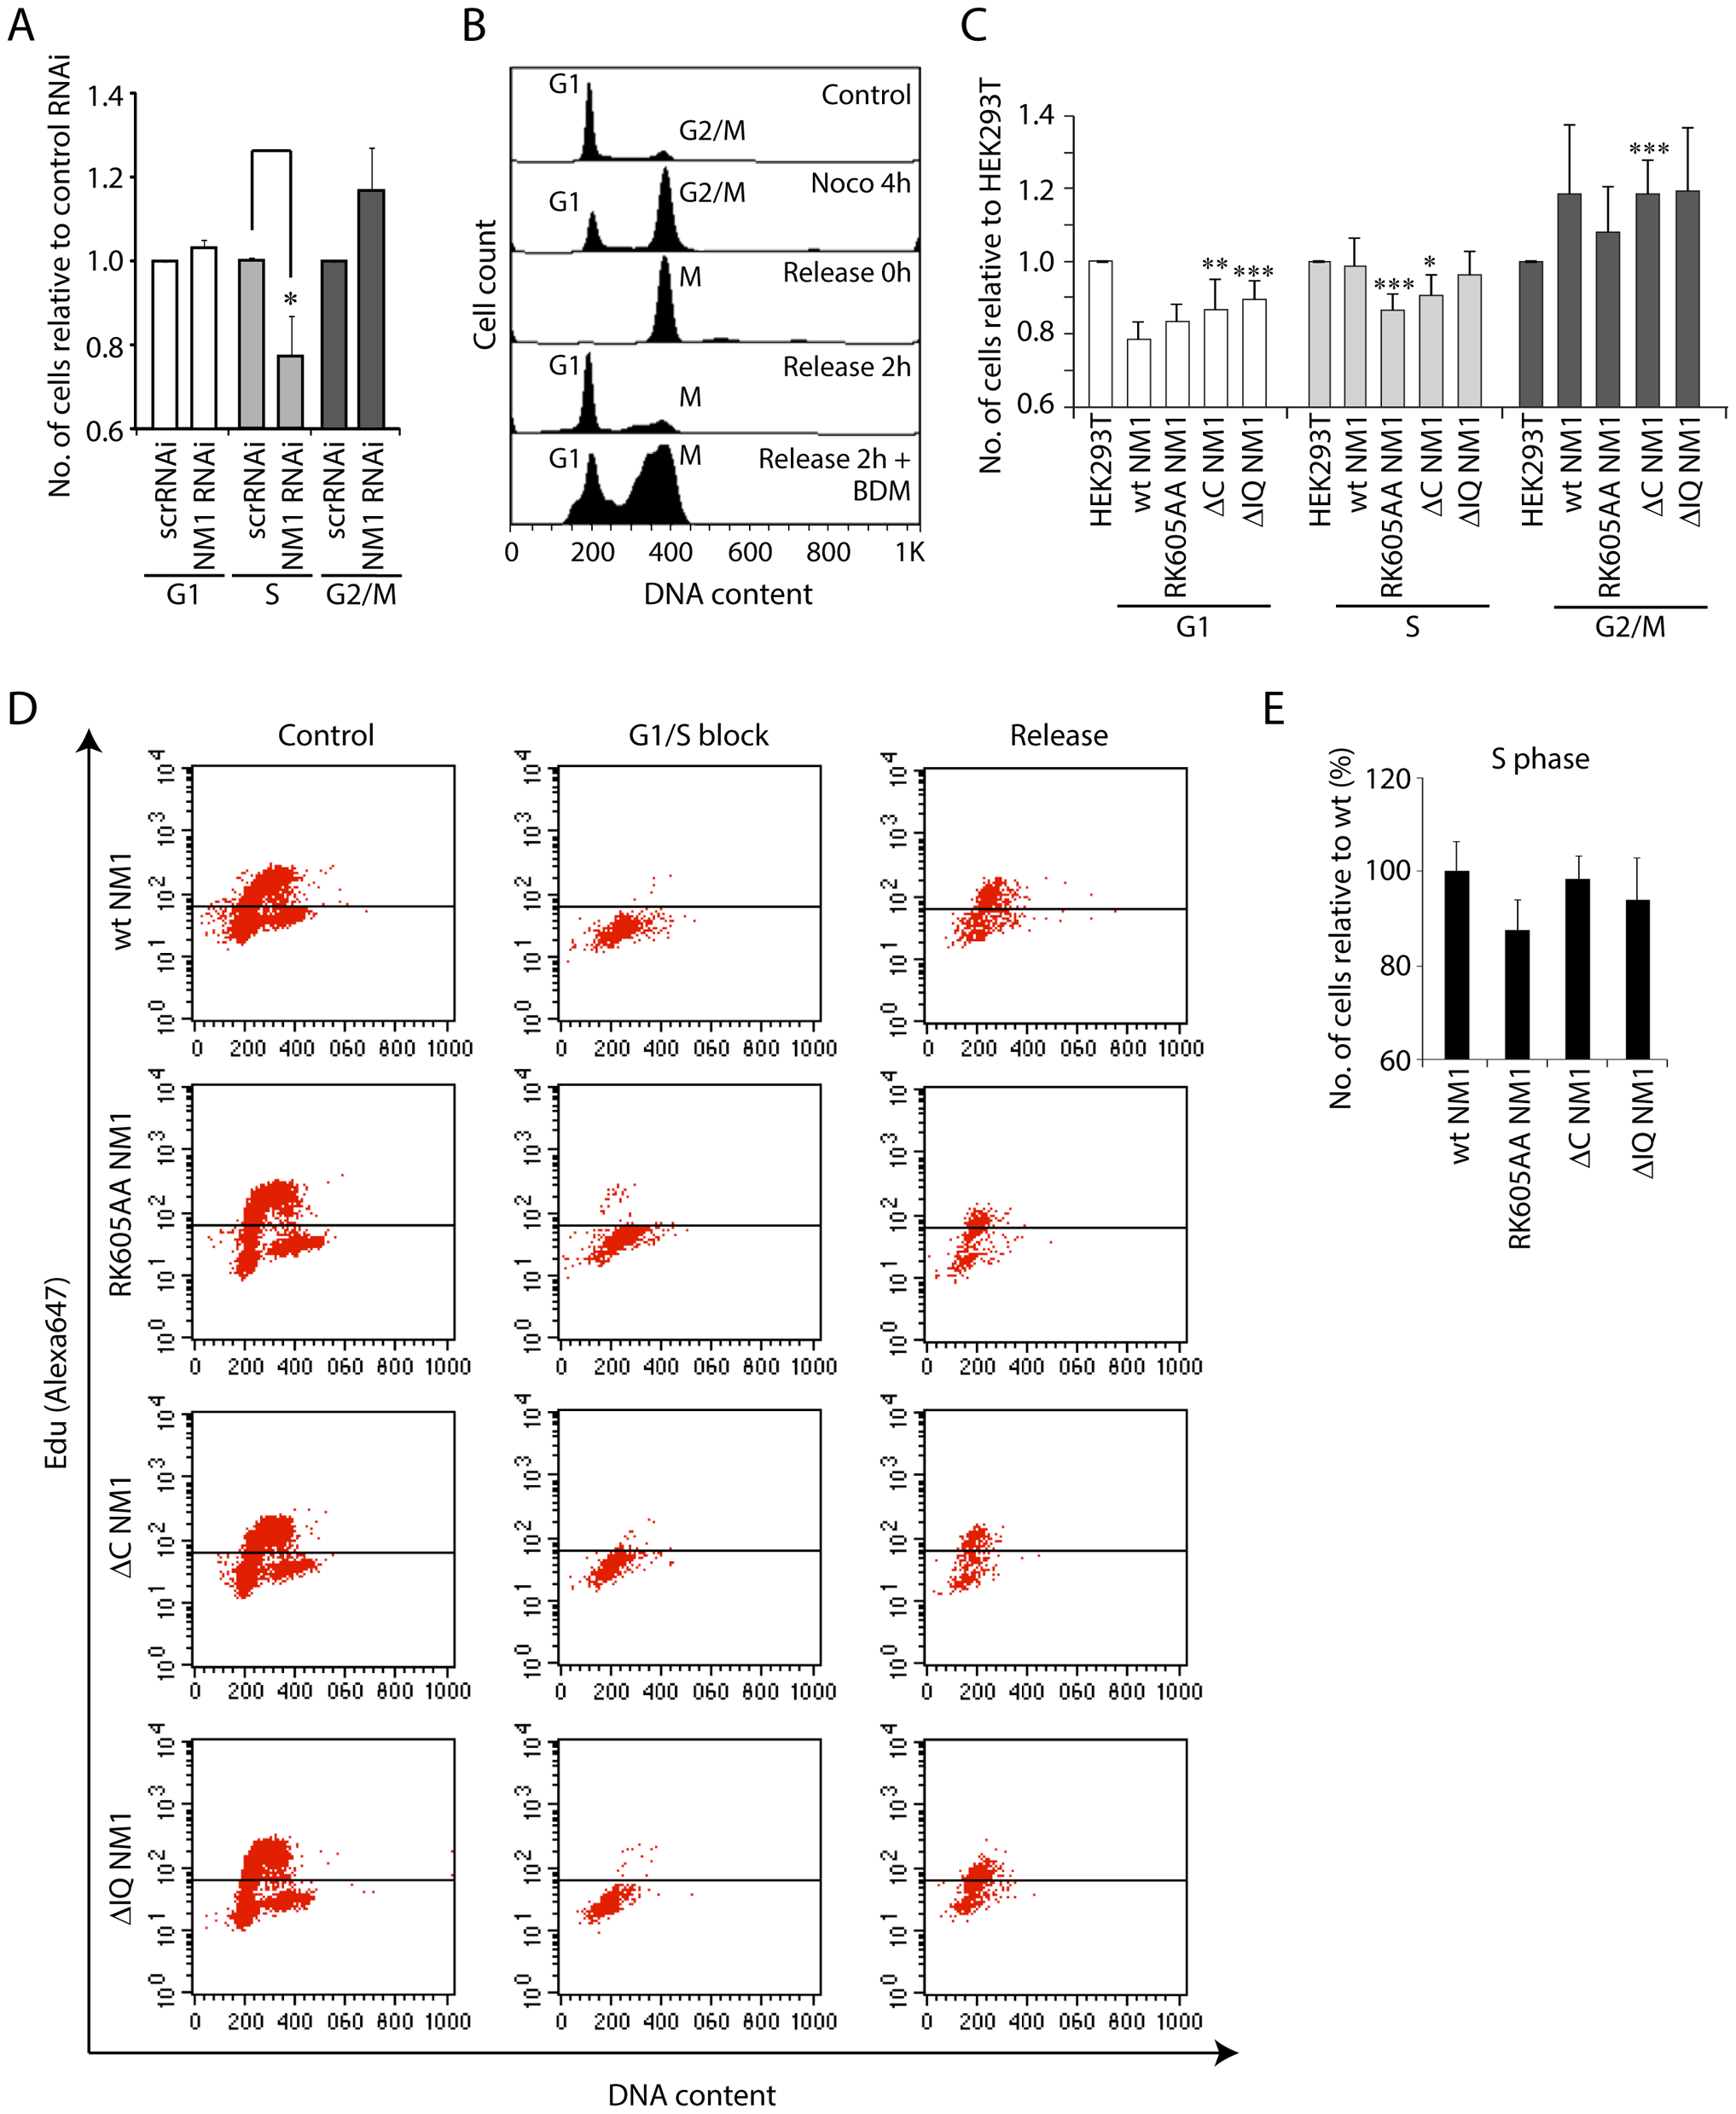 NM1 gene silencing by RNAi leads to a delay in cell cycle progression.